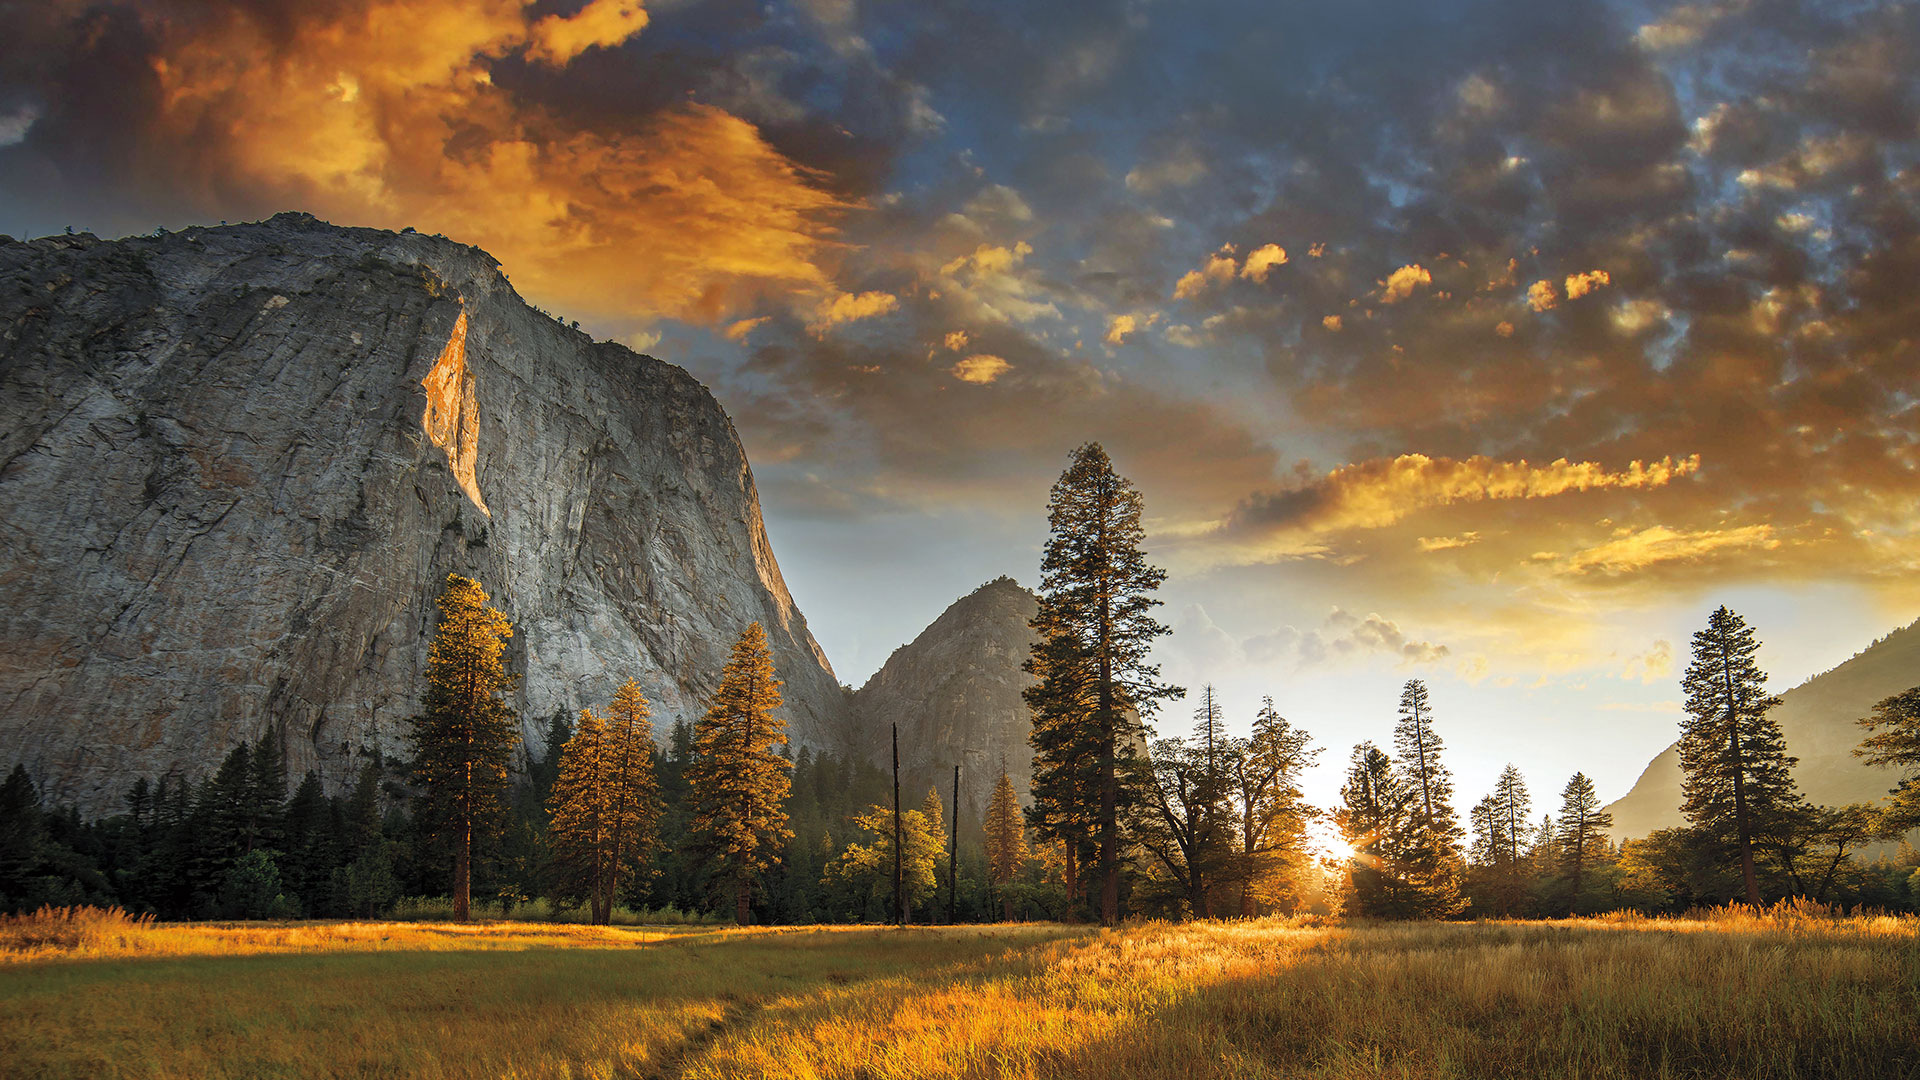 National Parks Are Overcrowded and Underfunded. But Here's Why There's Reason for Hope